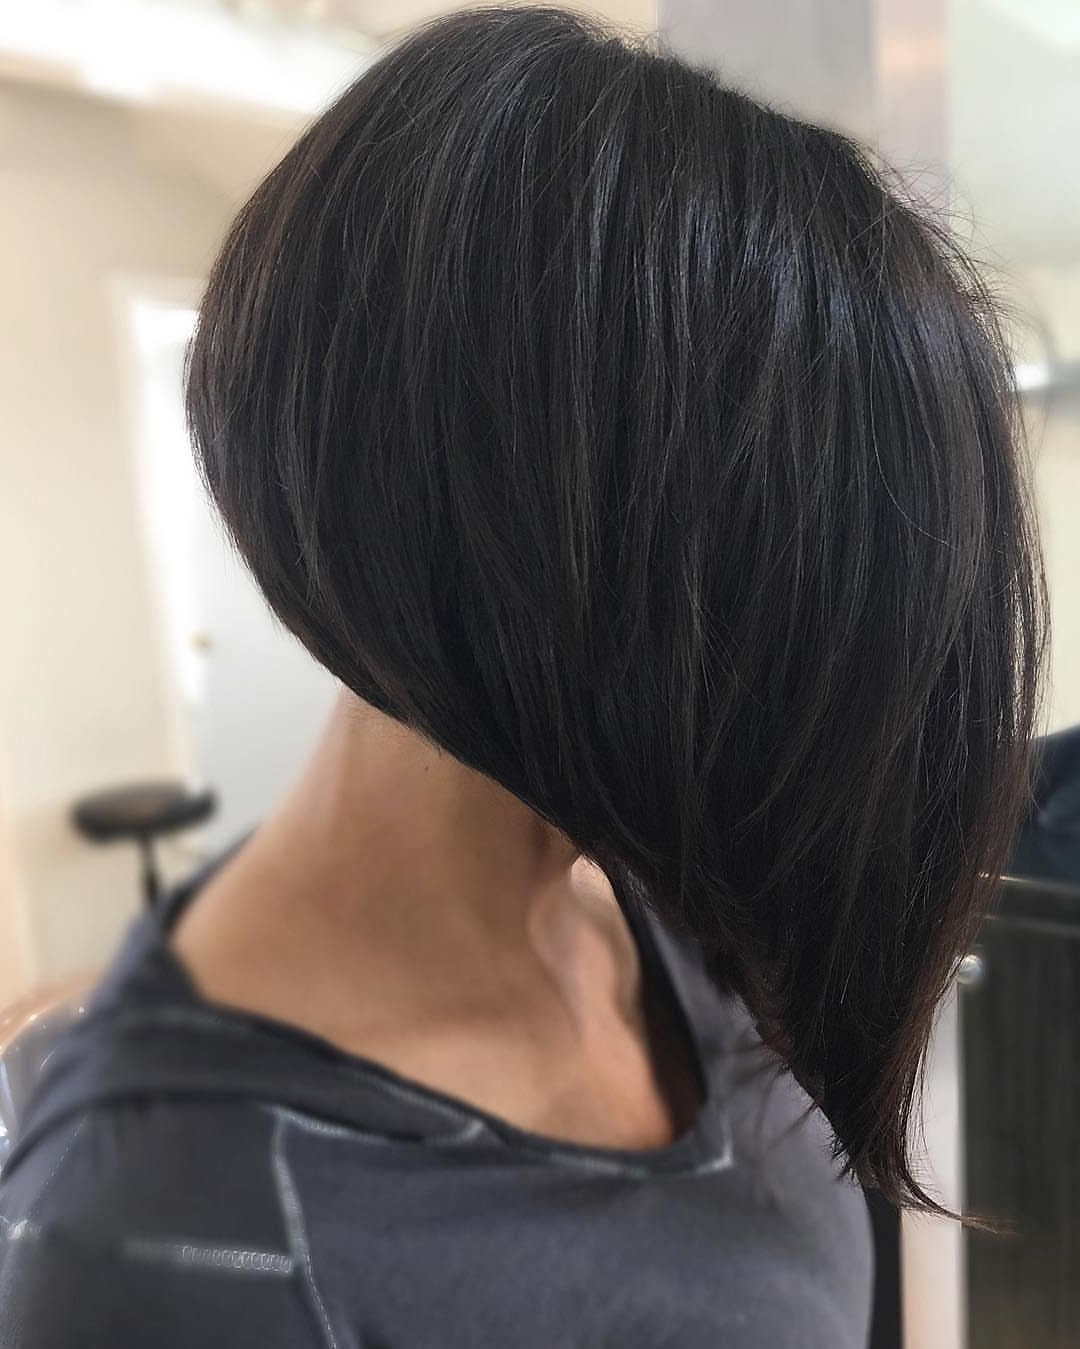 50 Gorgeous A Line Bob Haircuts To Beat Hair Boredom – Hair Within A Line Bob Hairstyles With Arched Bangs (View 13 of 20)